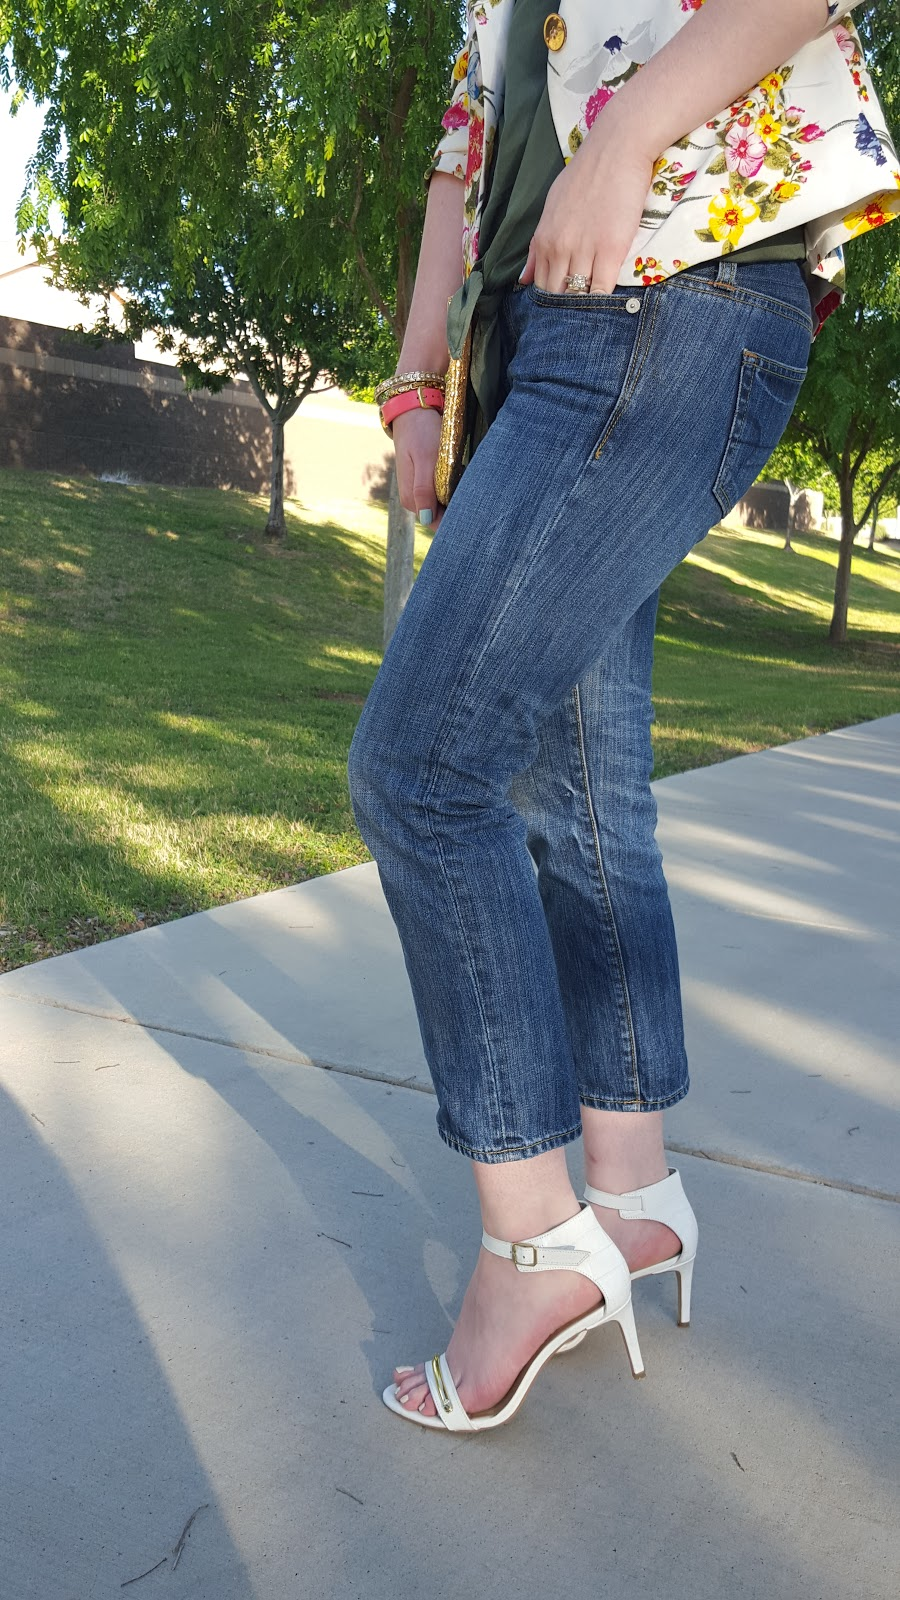 Cropped jeans are a staple this Spring- they look great with heeled sandals